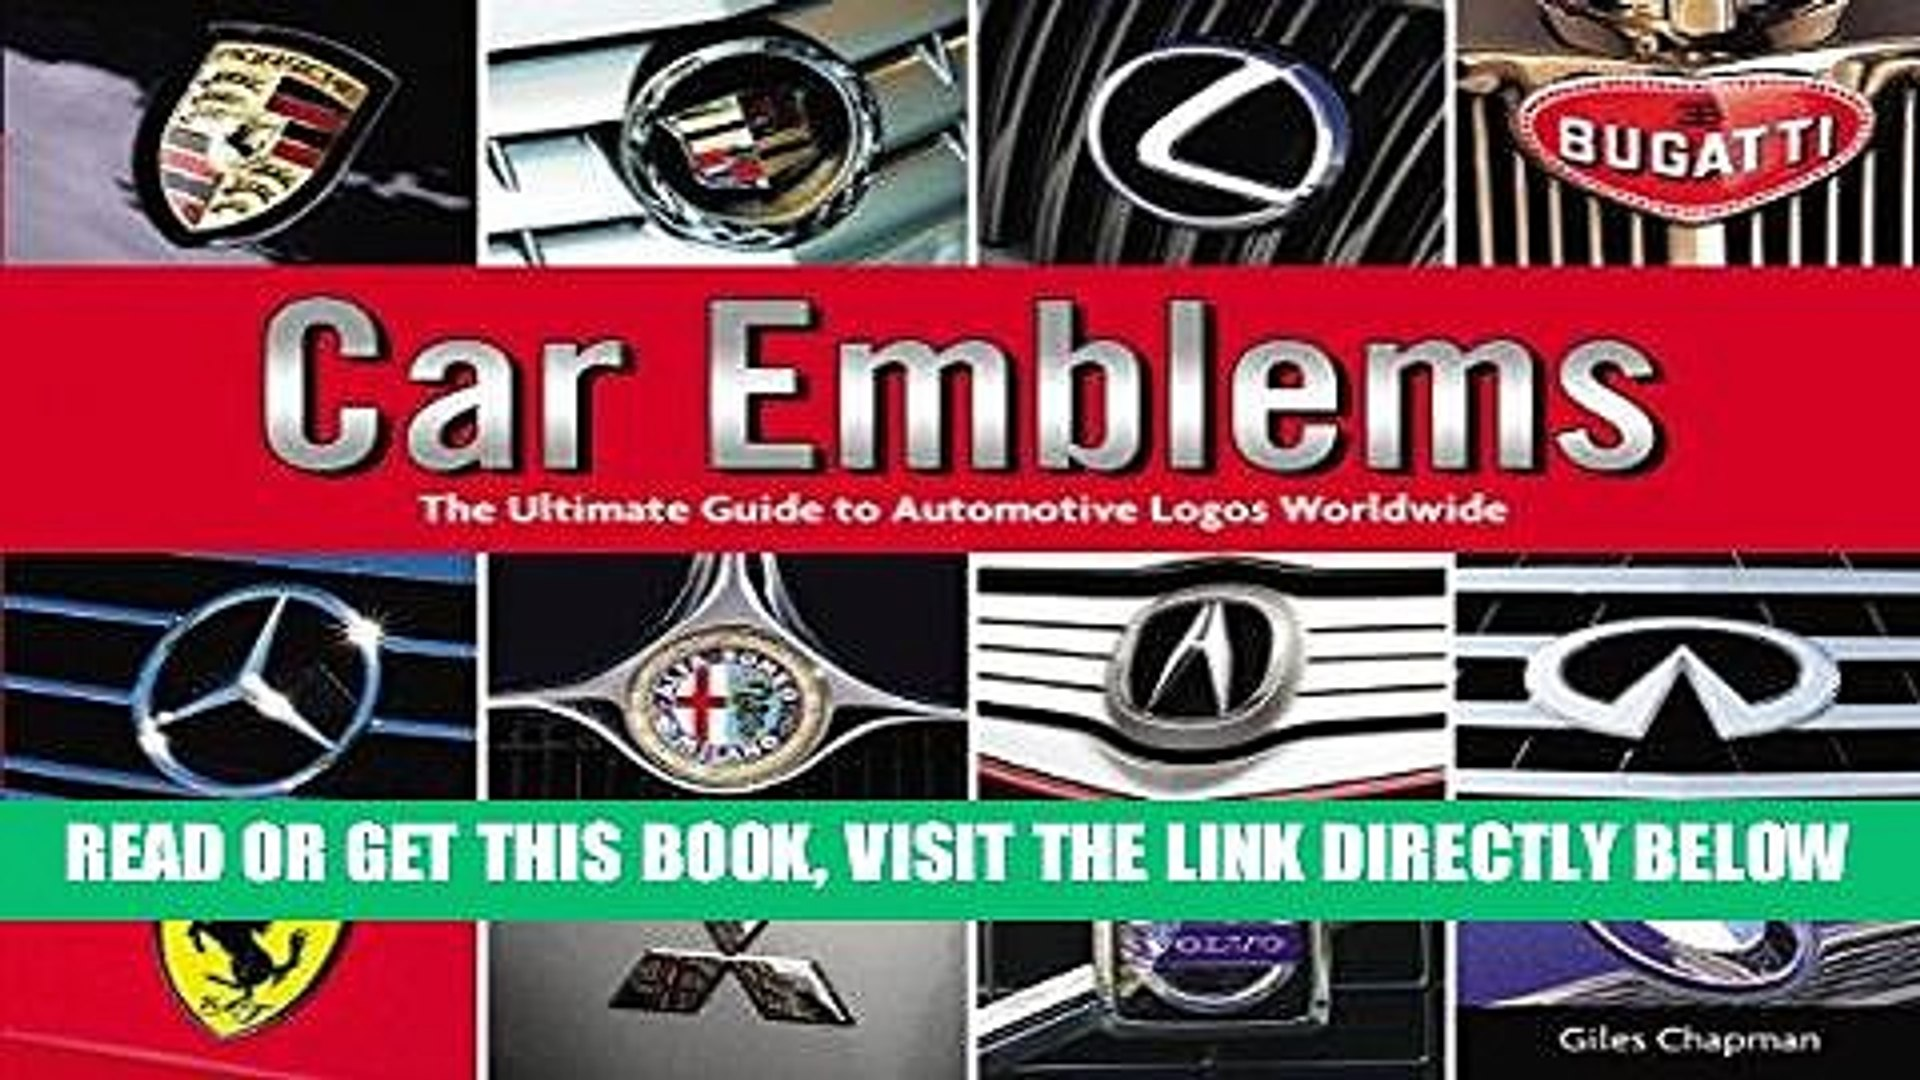 [FREE] EBOOK Car Emblems: The Ultimate Guide to Automotive Logos Worldwide  ONLINE COLLECTION